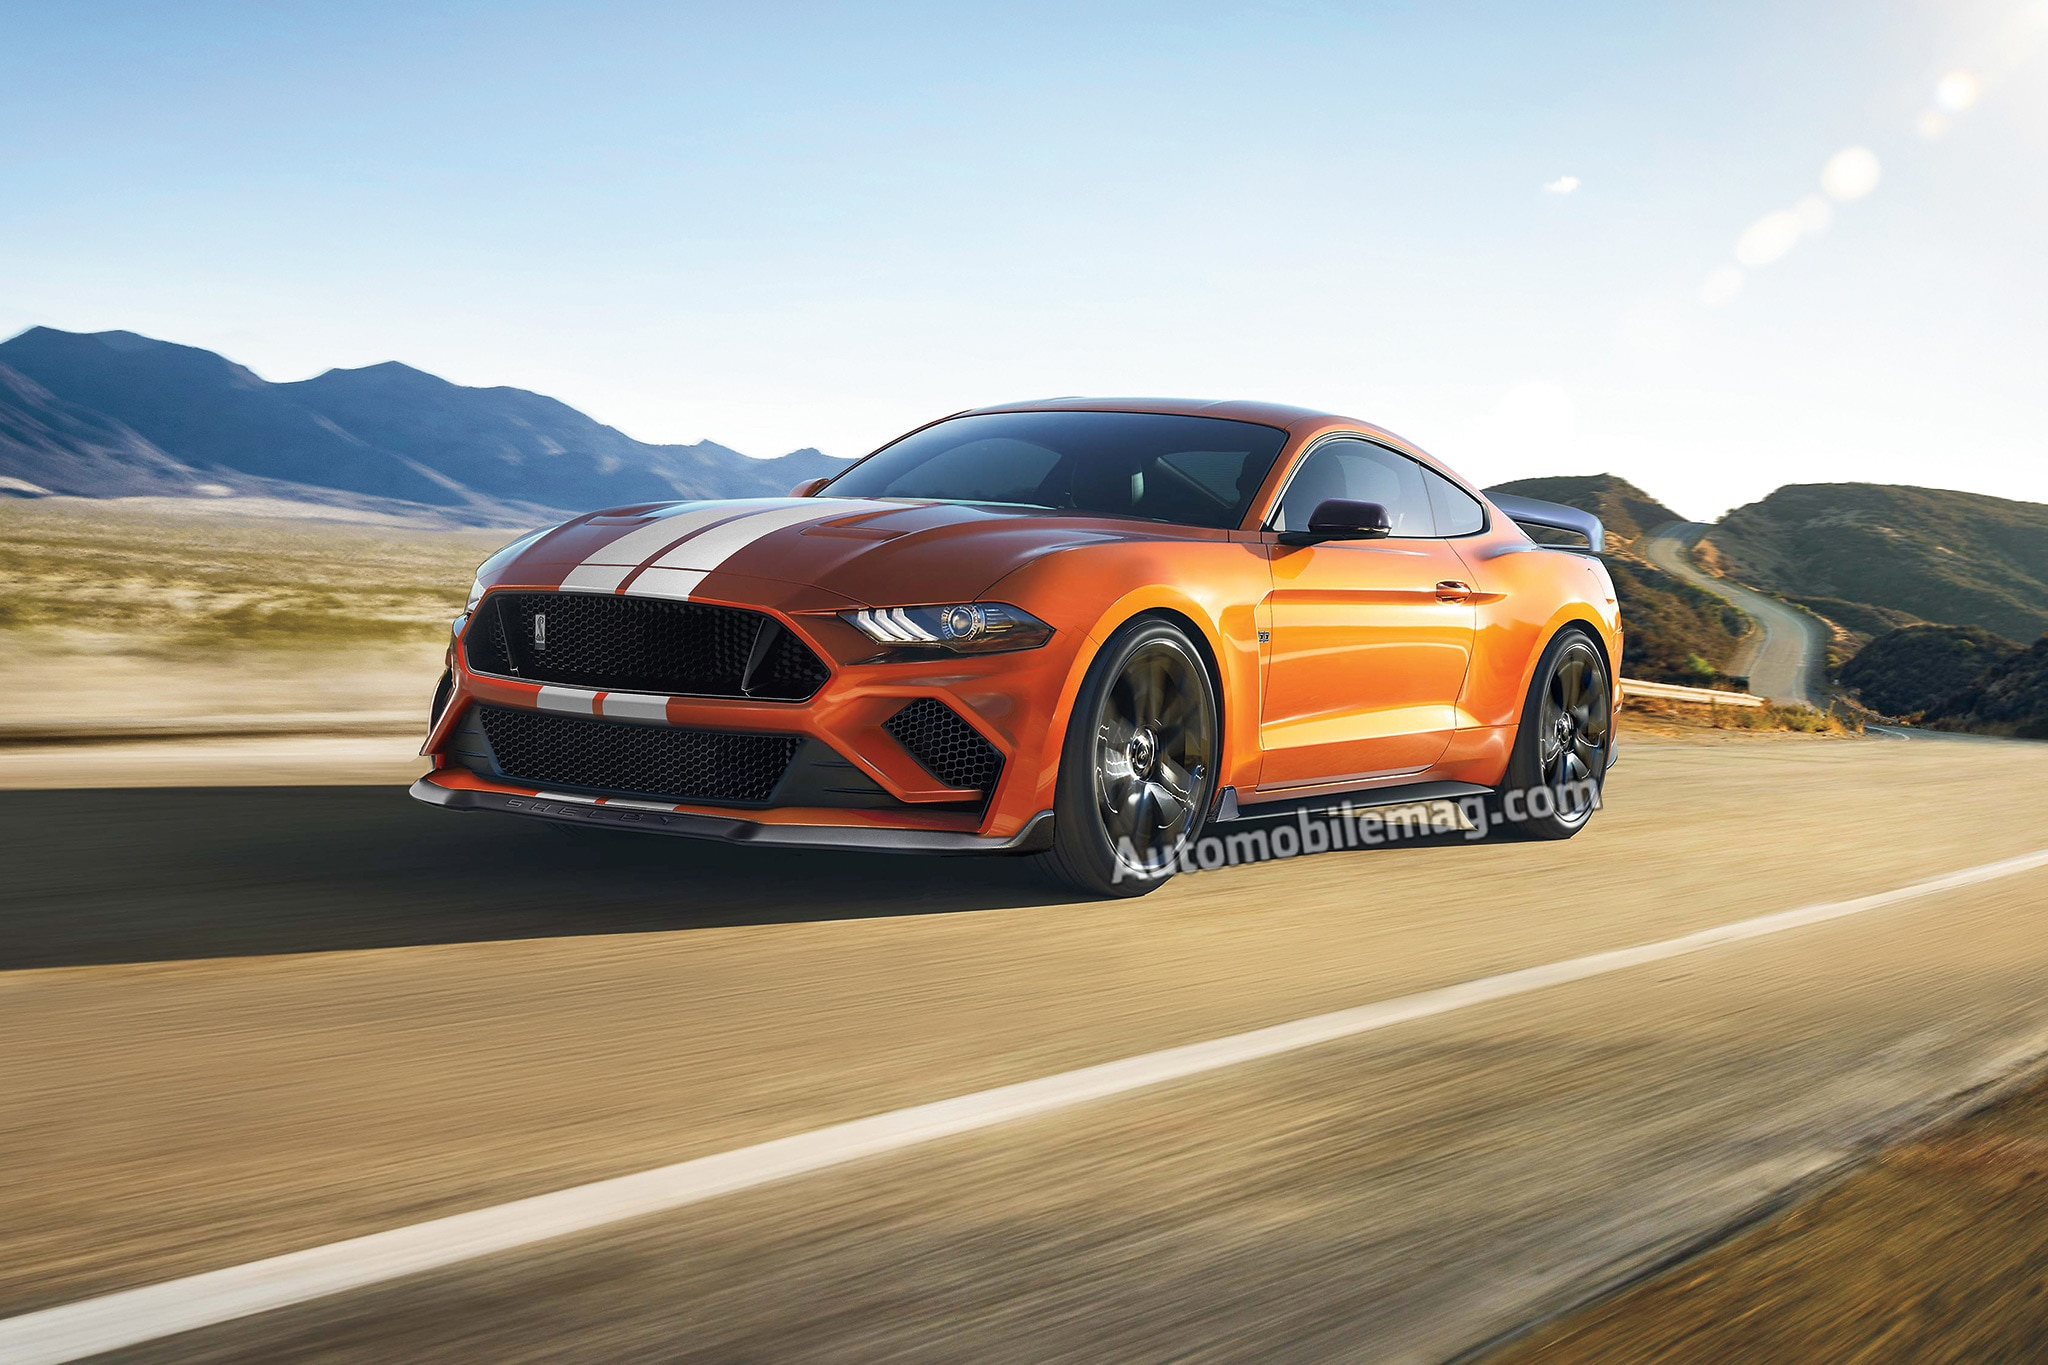 2019 ford mustang shelby gt500 confirmed with 700 horsepower automobile magazine. Black Bedroom Furniture Sets. Home Design Ideas